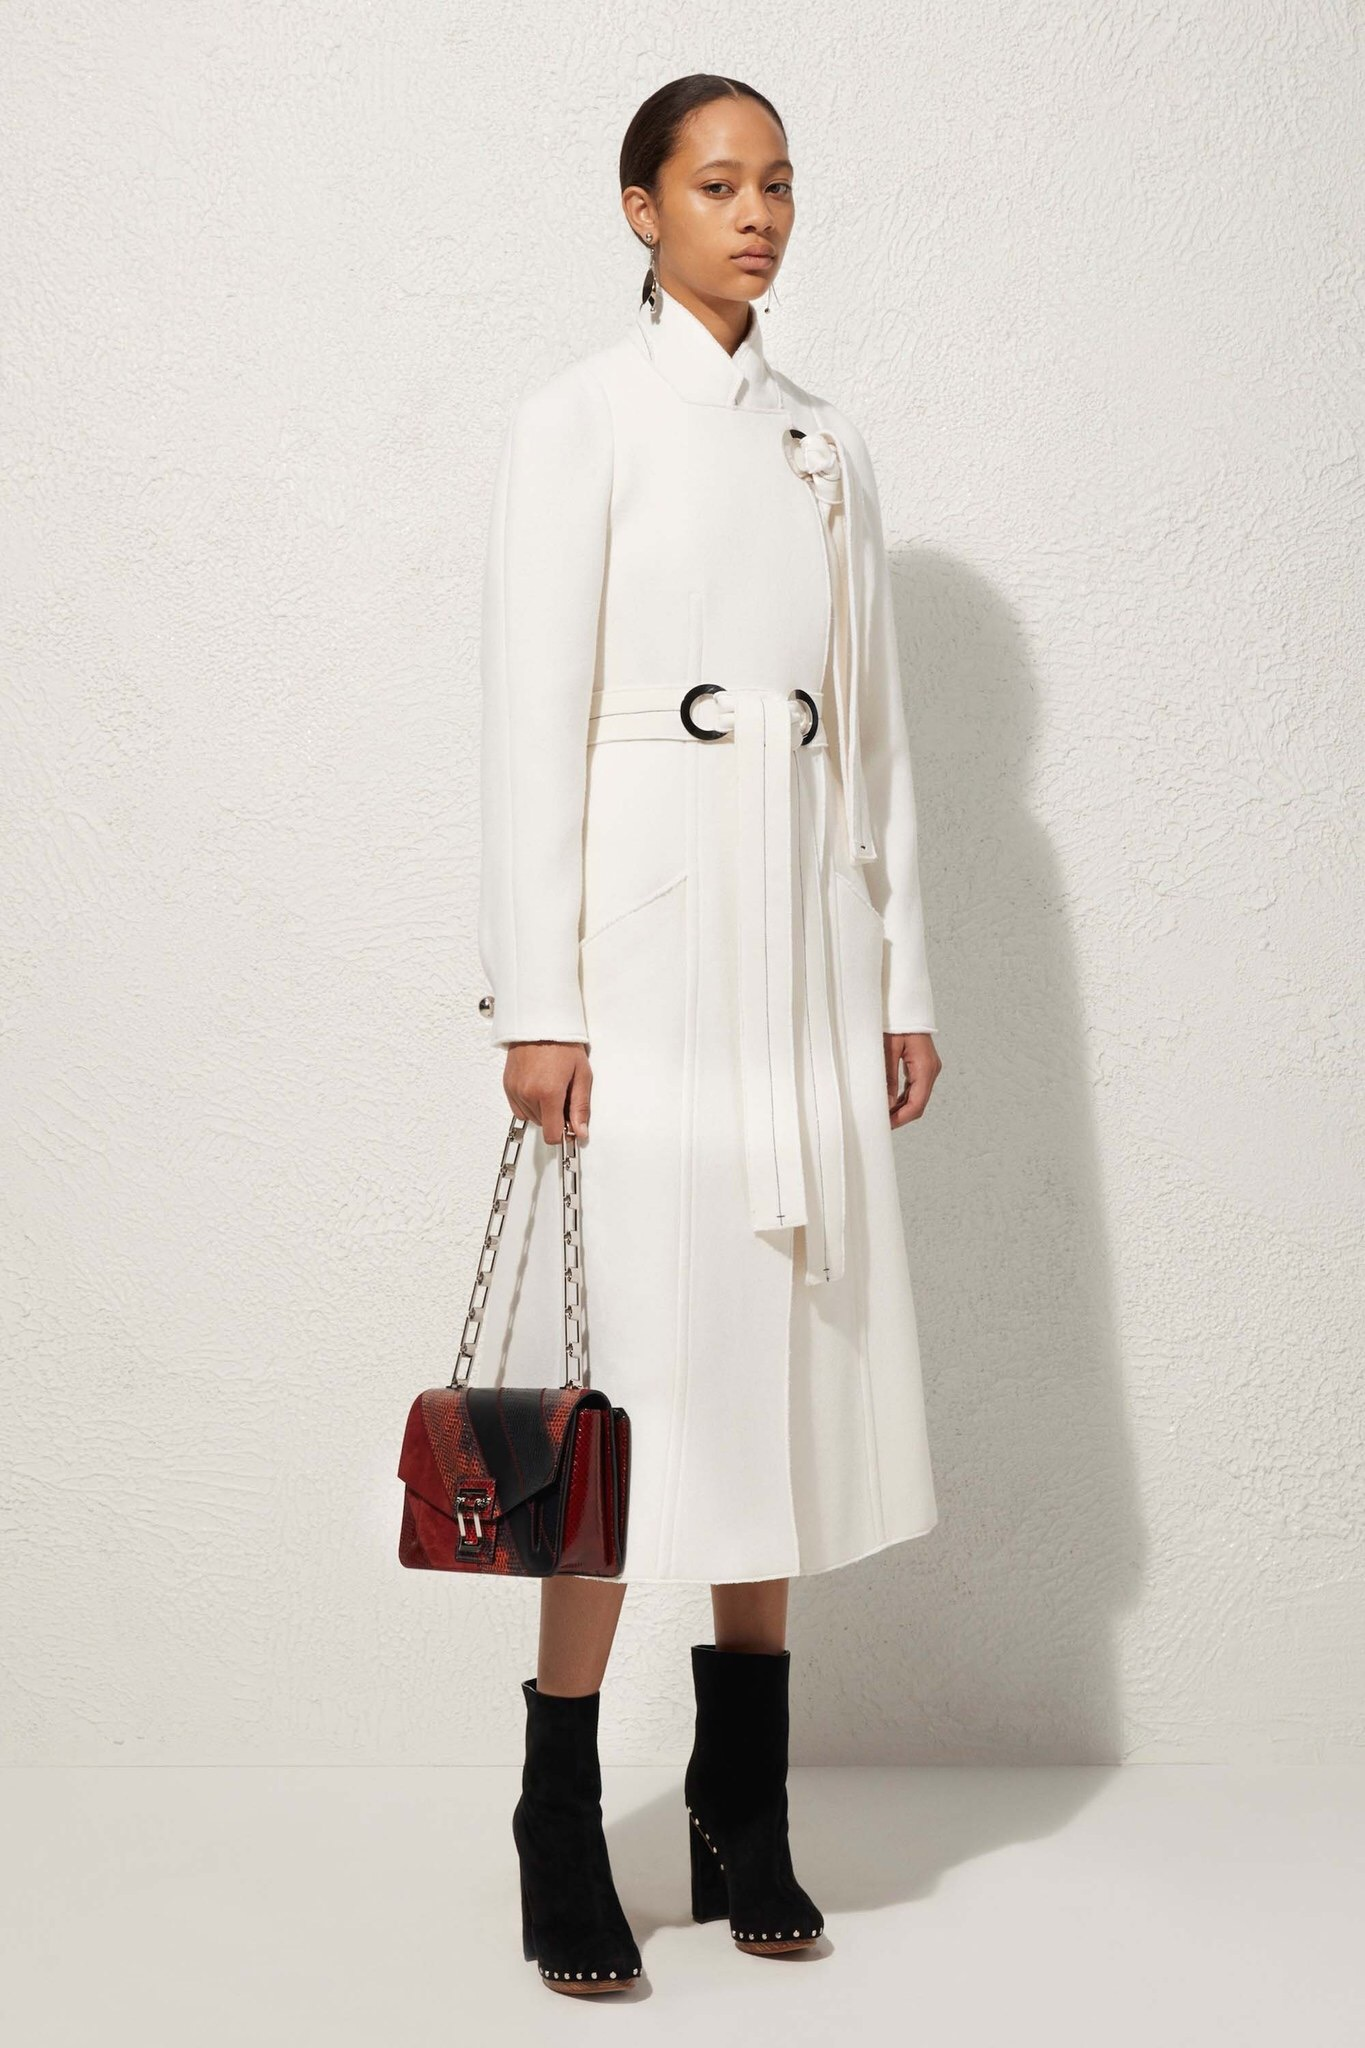 BEST PIECES FROM PROENZA SCHOULER PRE-FALL COLLECTION